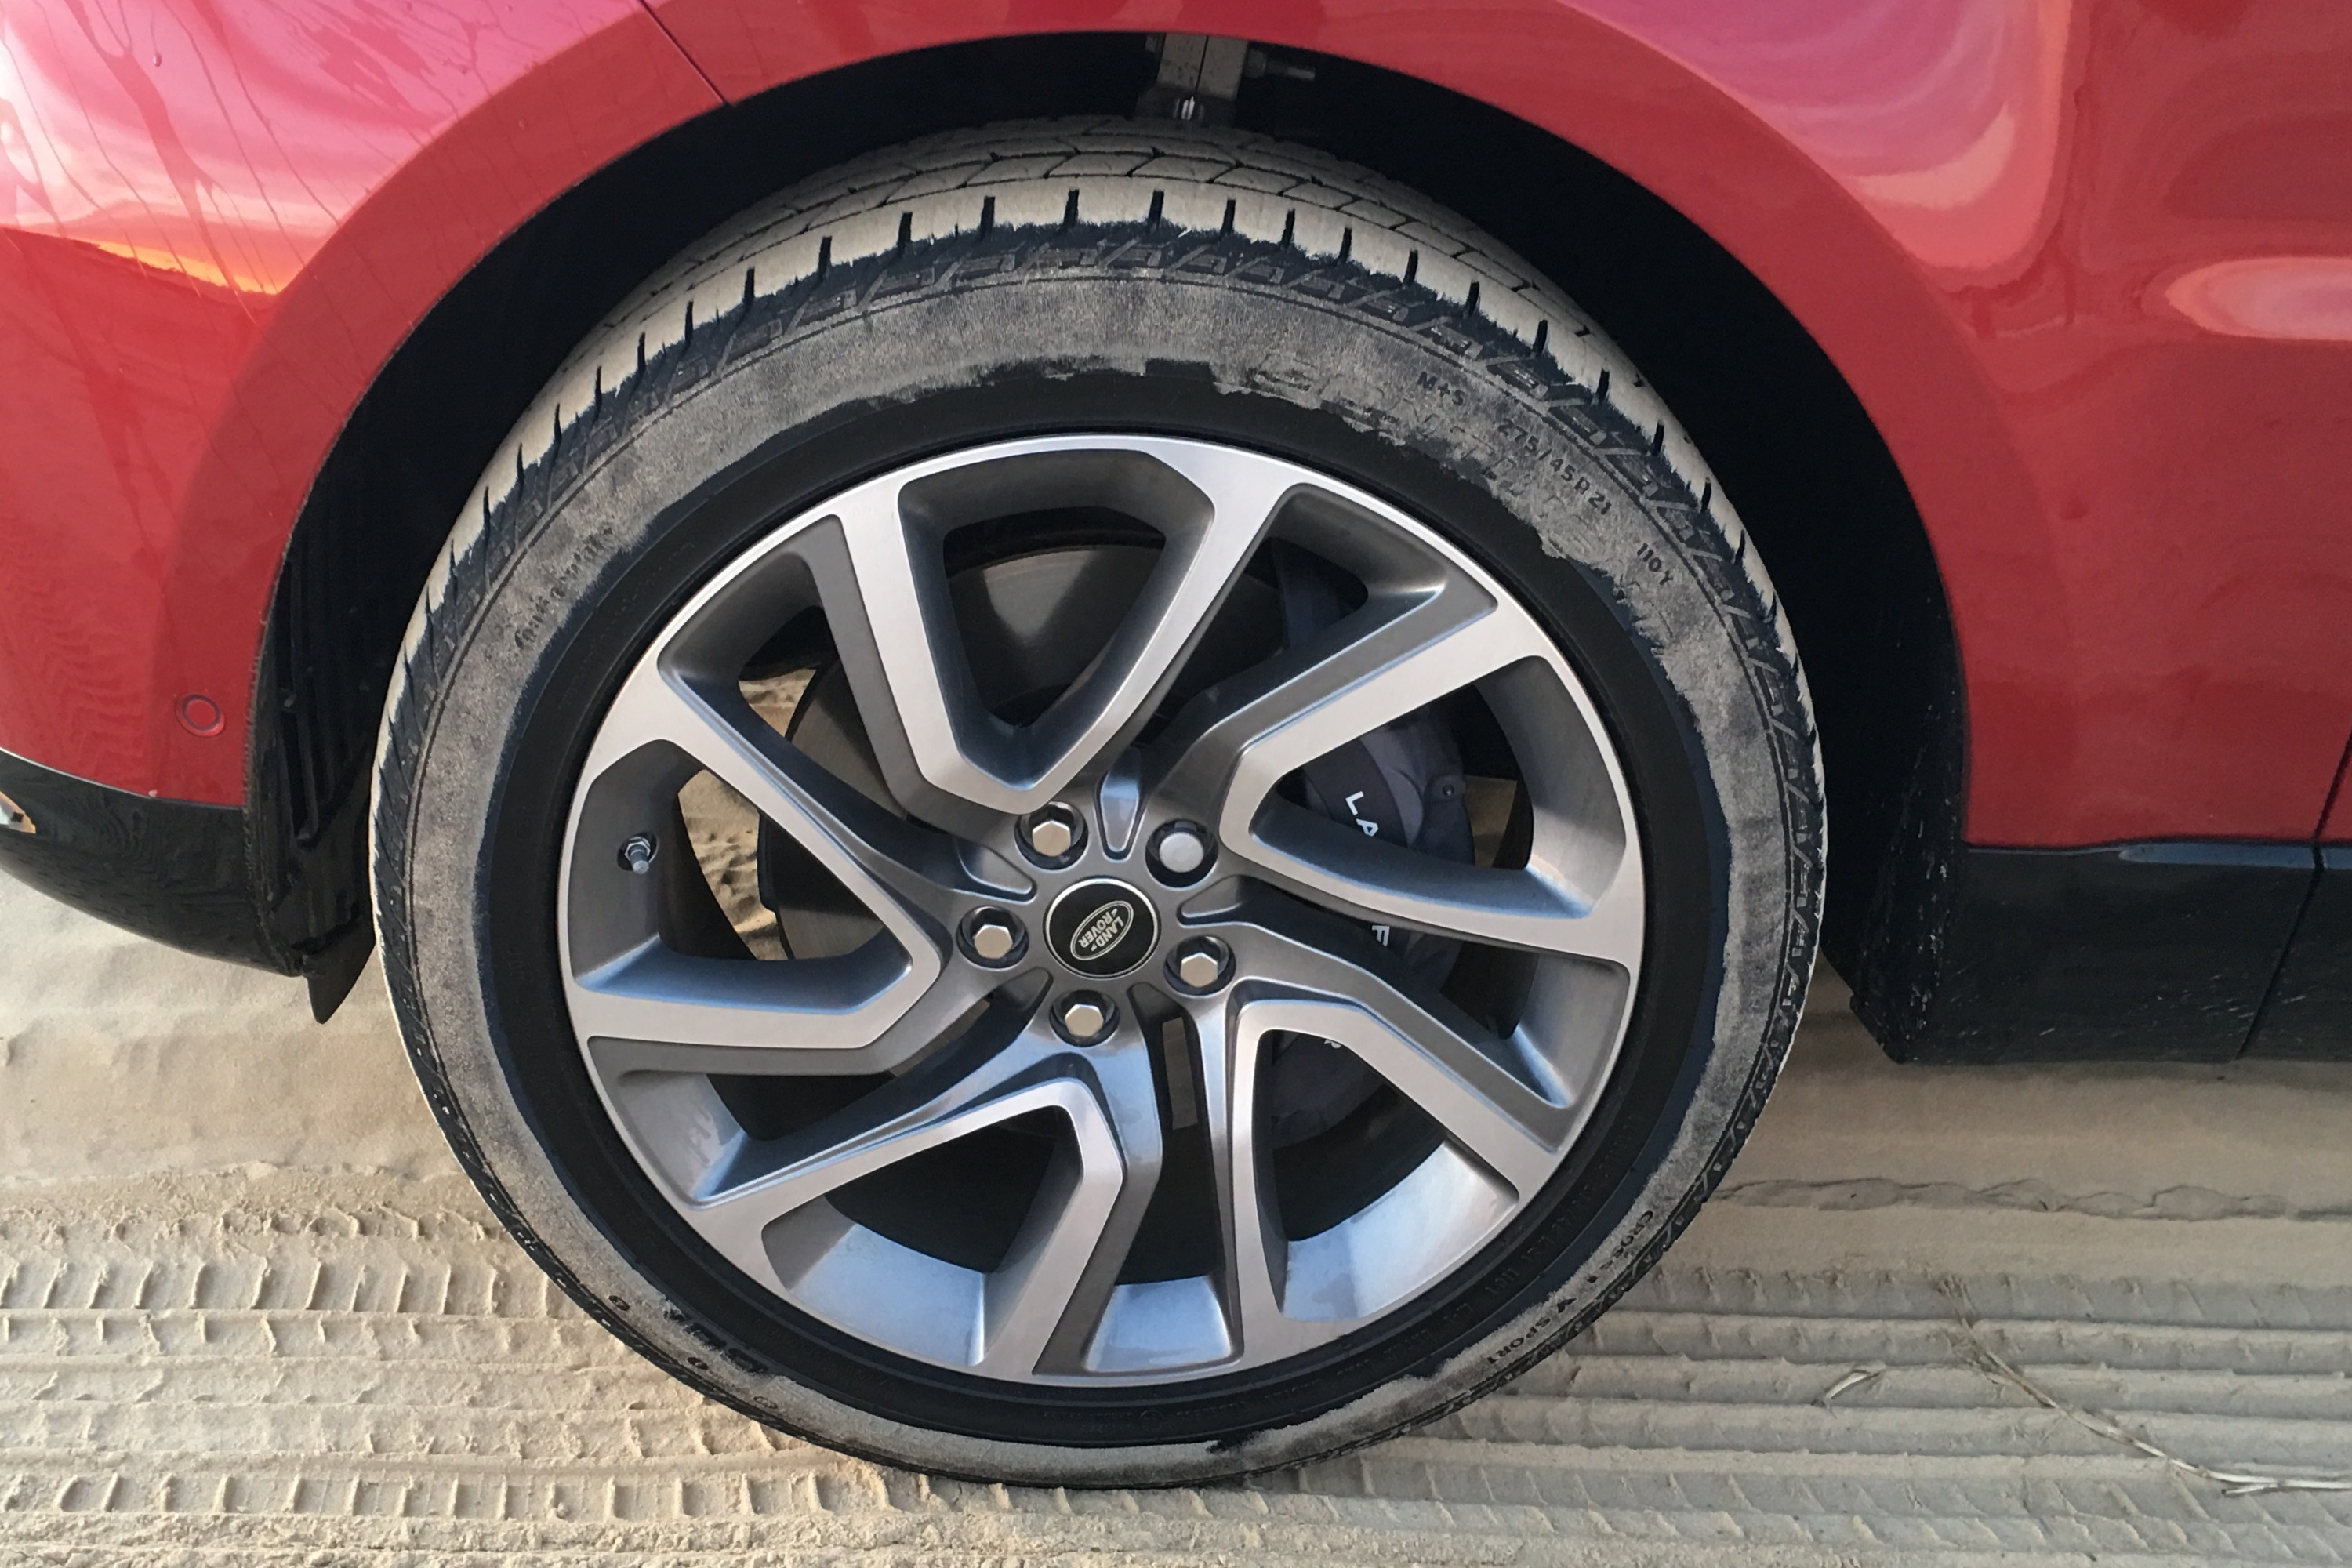 2019 Range Rover PHEV 19 Alloy wheels